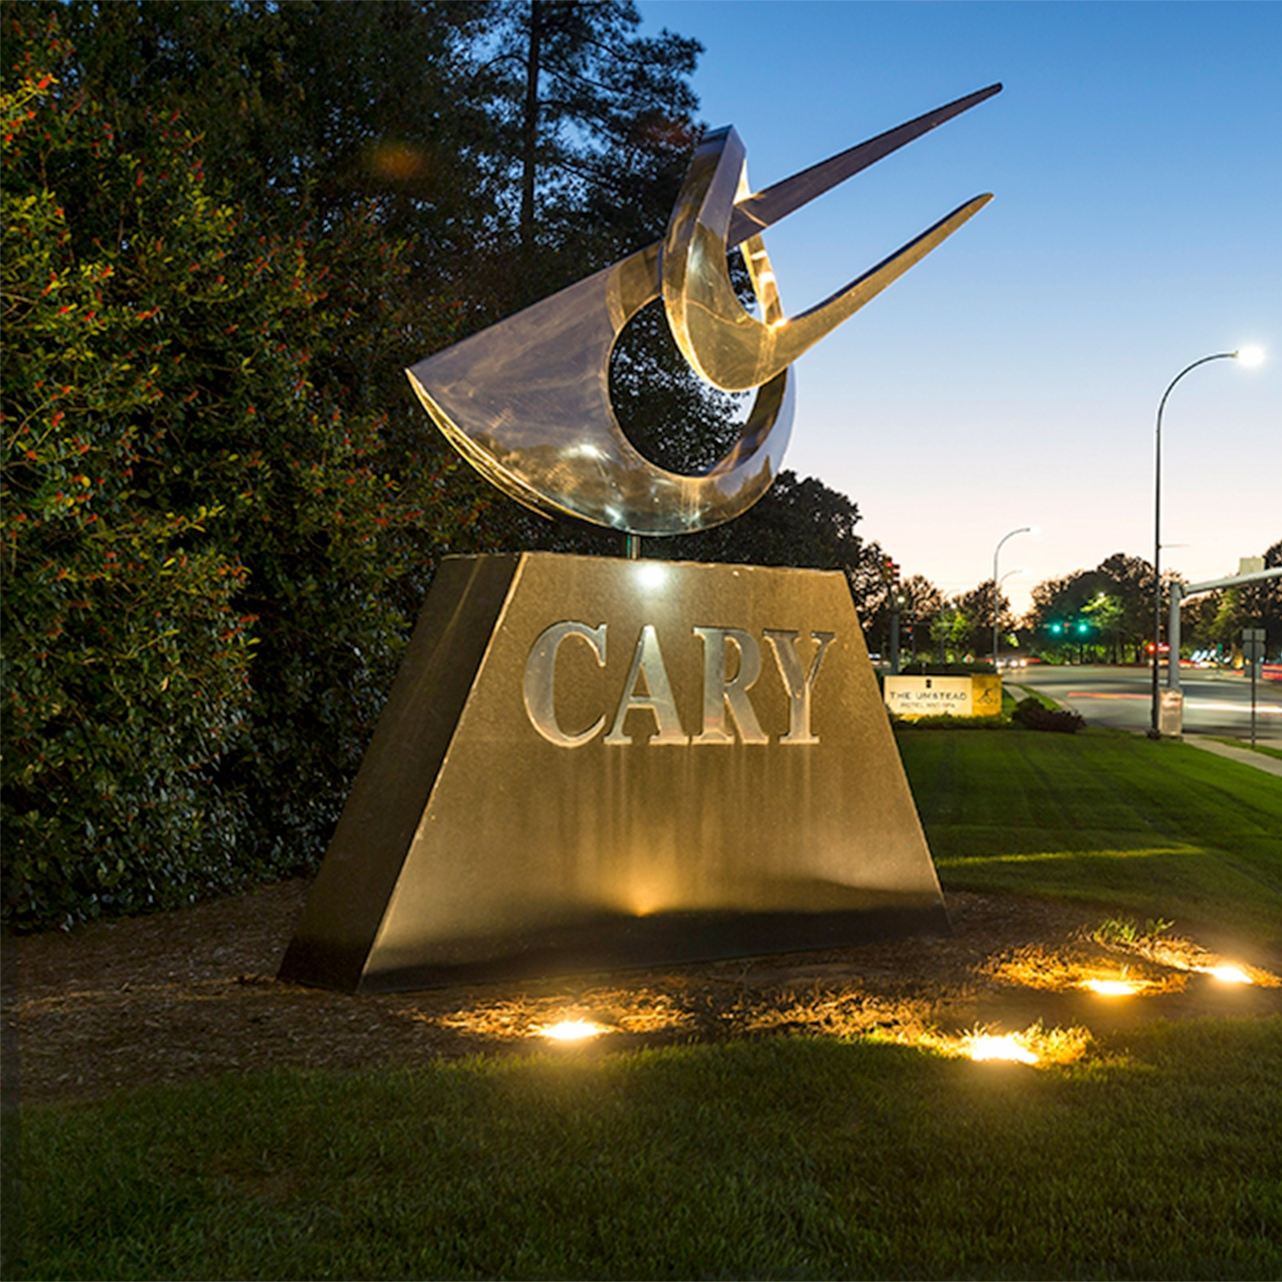 Photo of the statue of Cary.